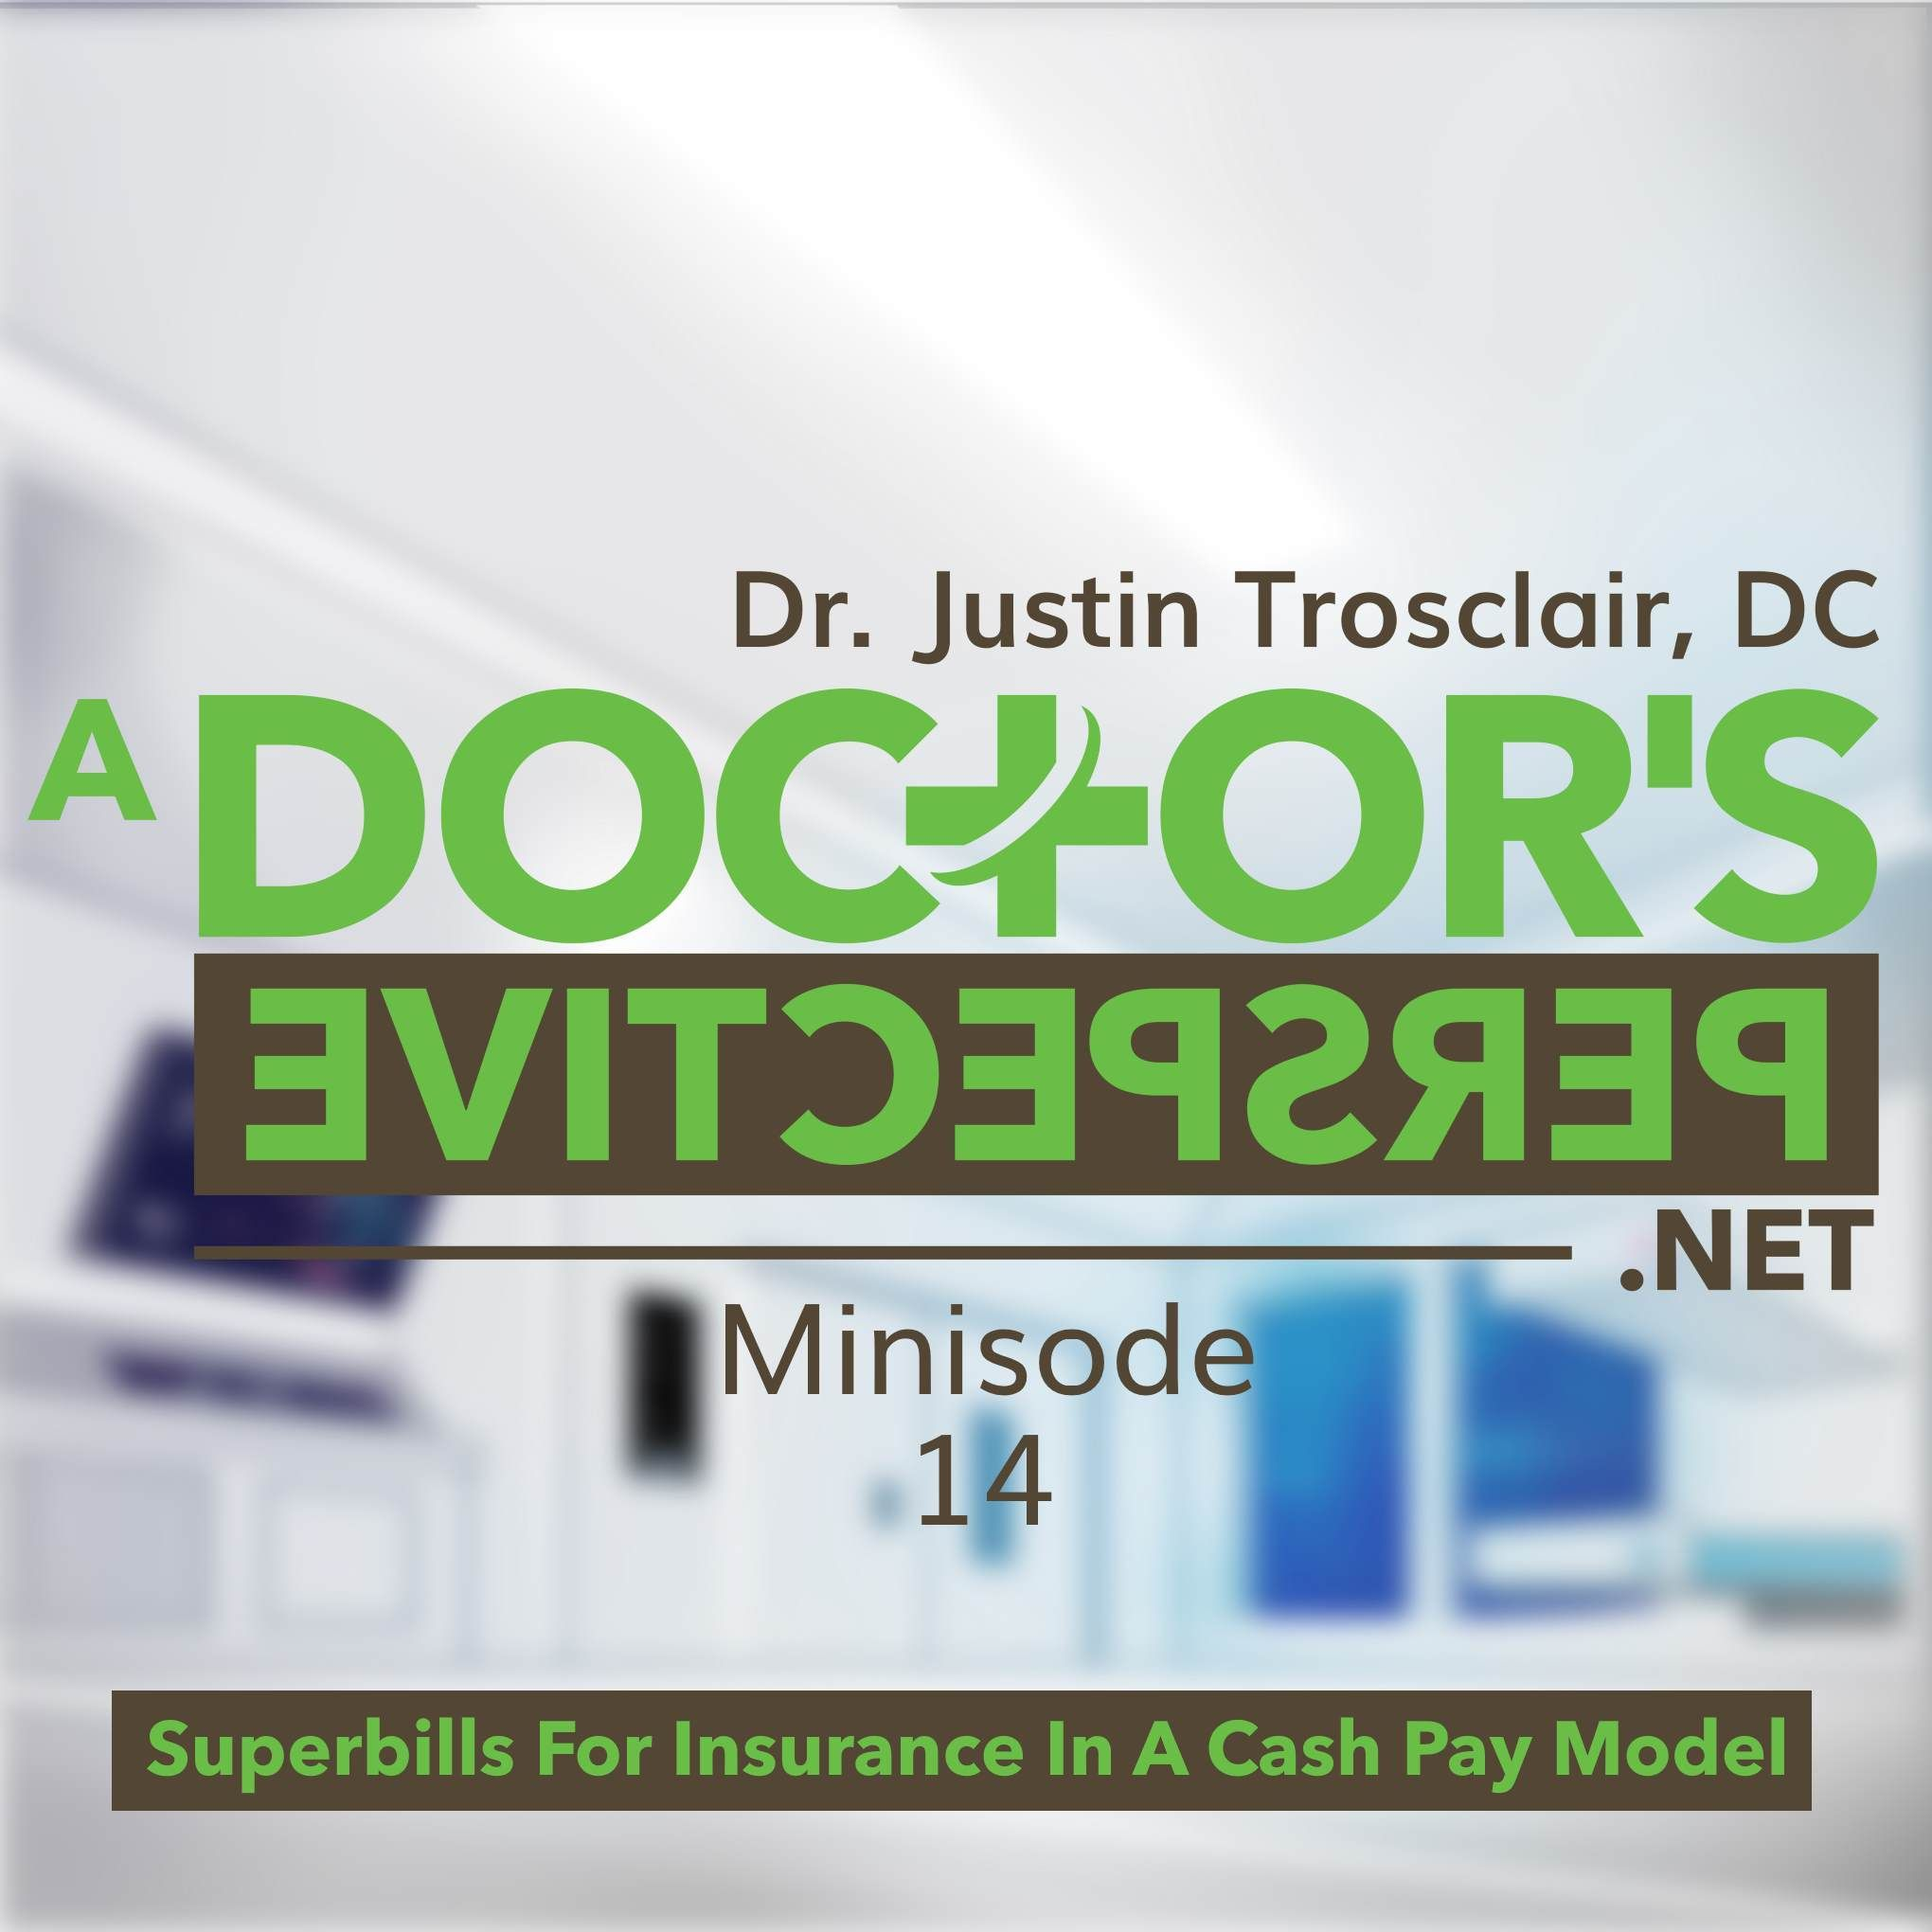 M 14 superbills for insurance in a cash pay model with